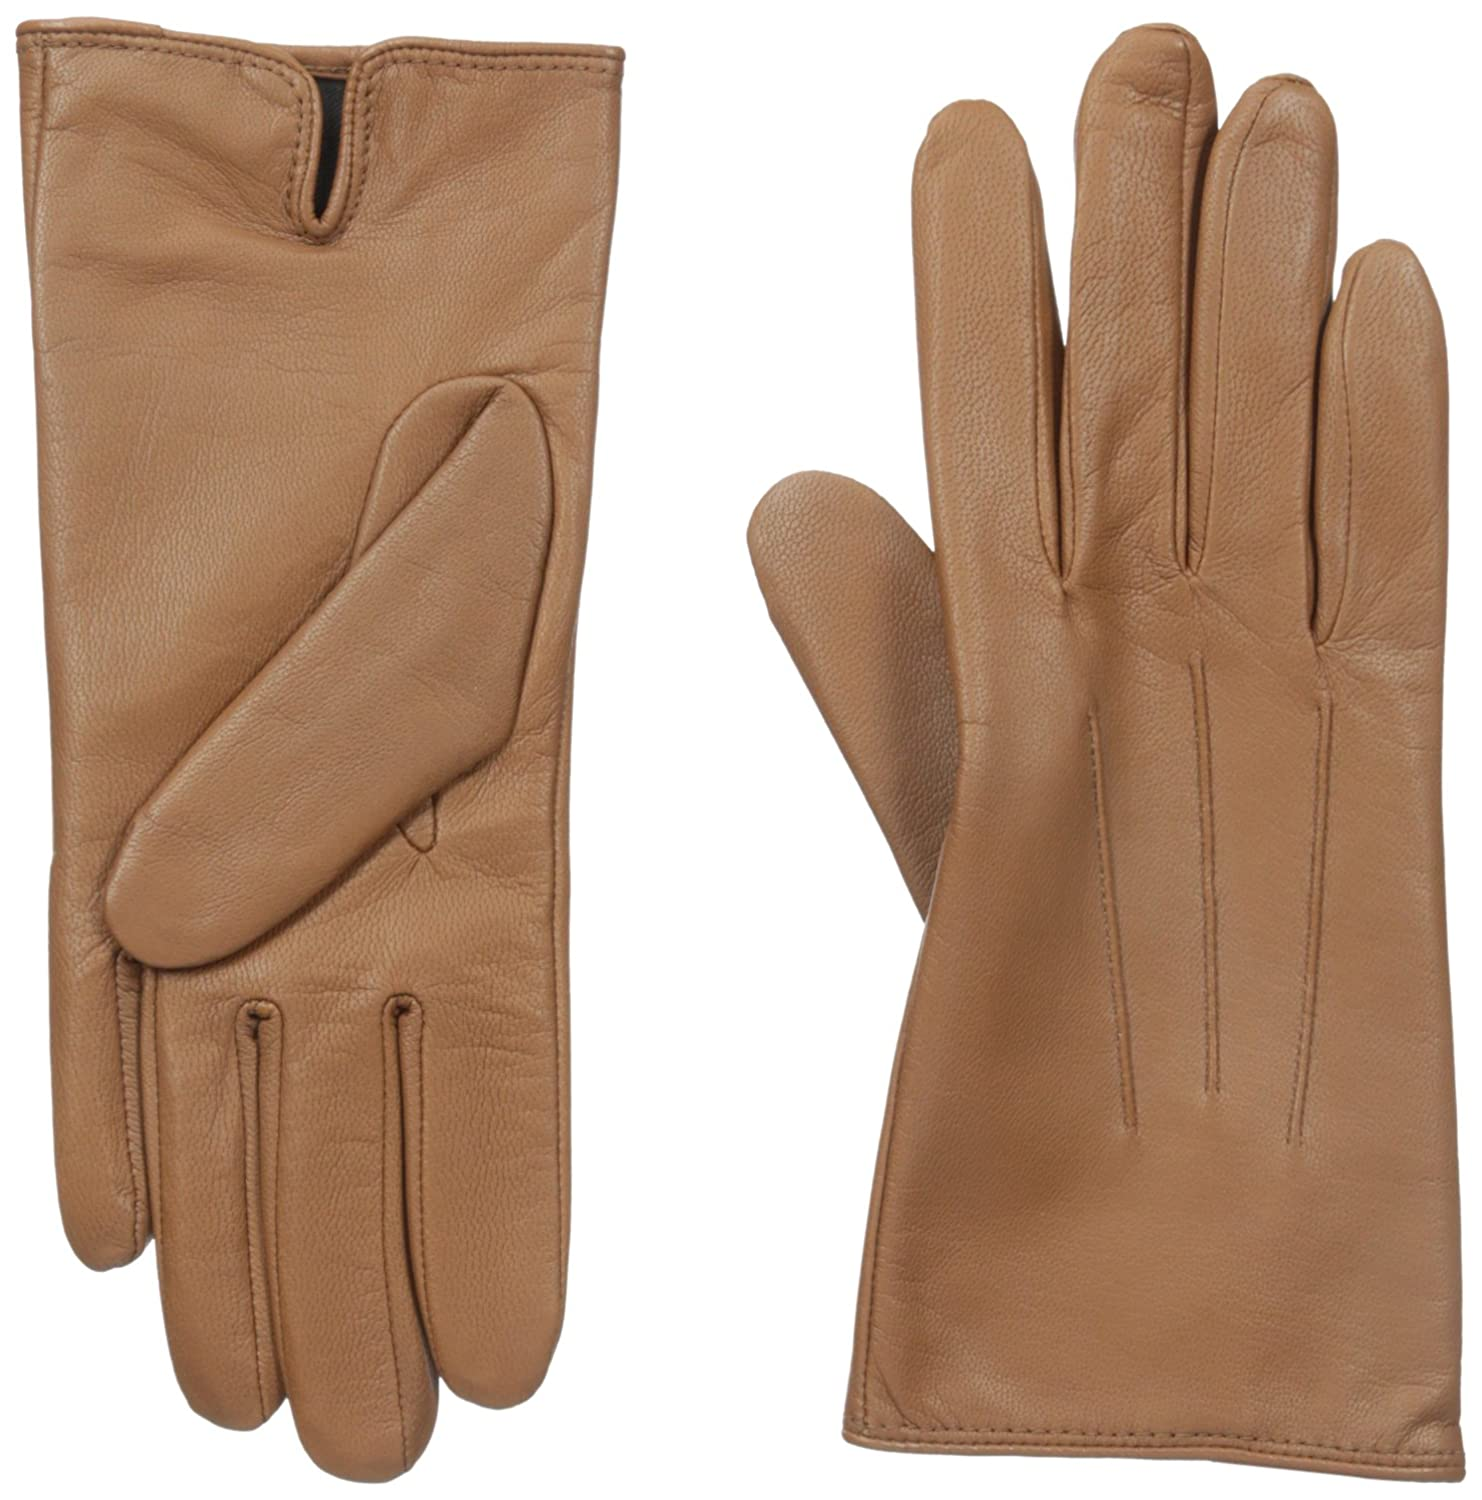 Ladies leather gloves isotoner - Amazon Com Isotoner Women S Smartouch Leather Glove Brown 7 5 Clothing